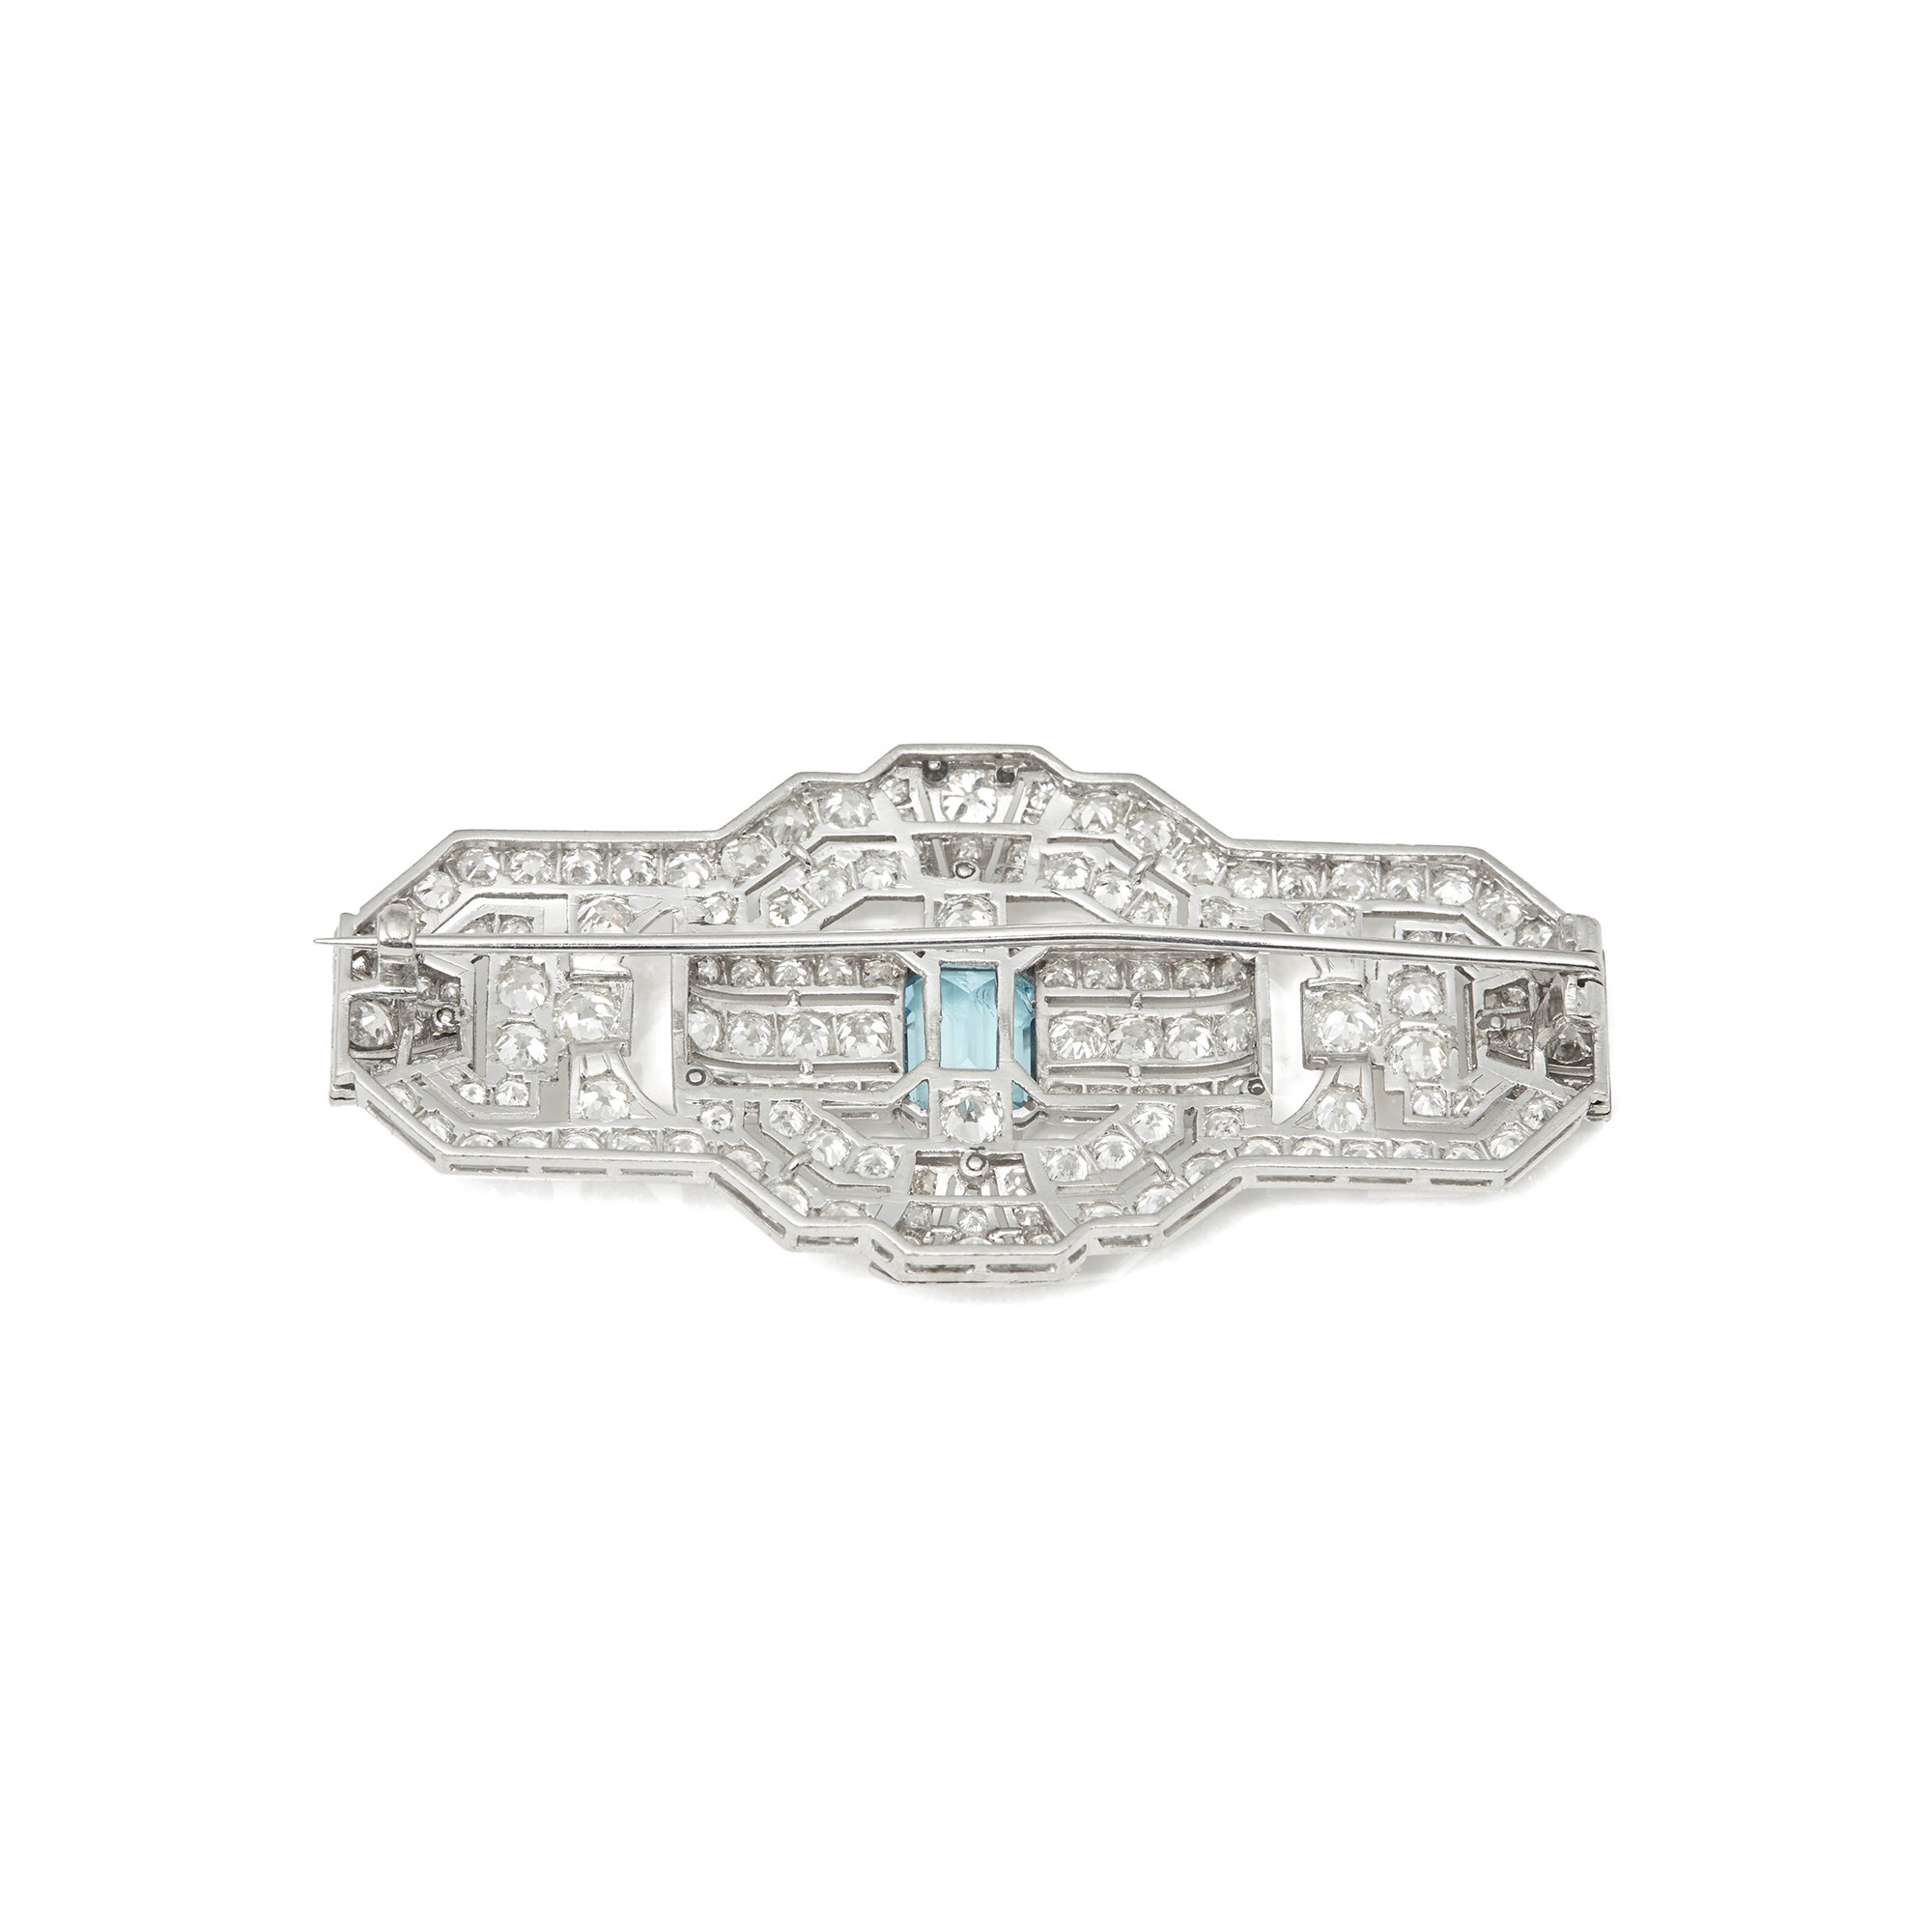 Aquamarine 18k White Gold Aquamarine & Diamond Vintage Brooch